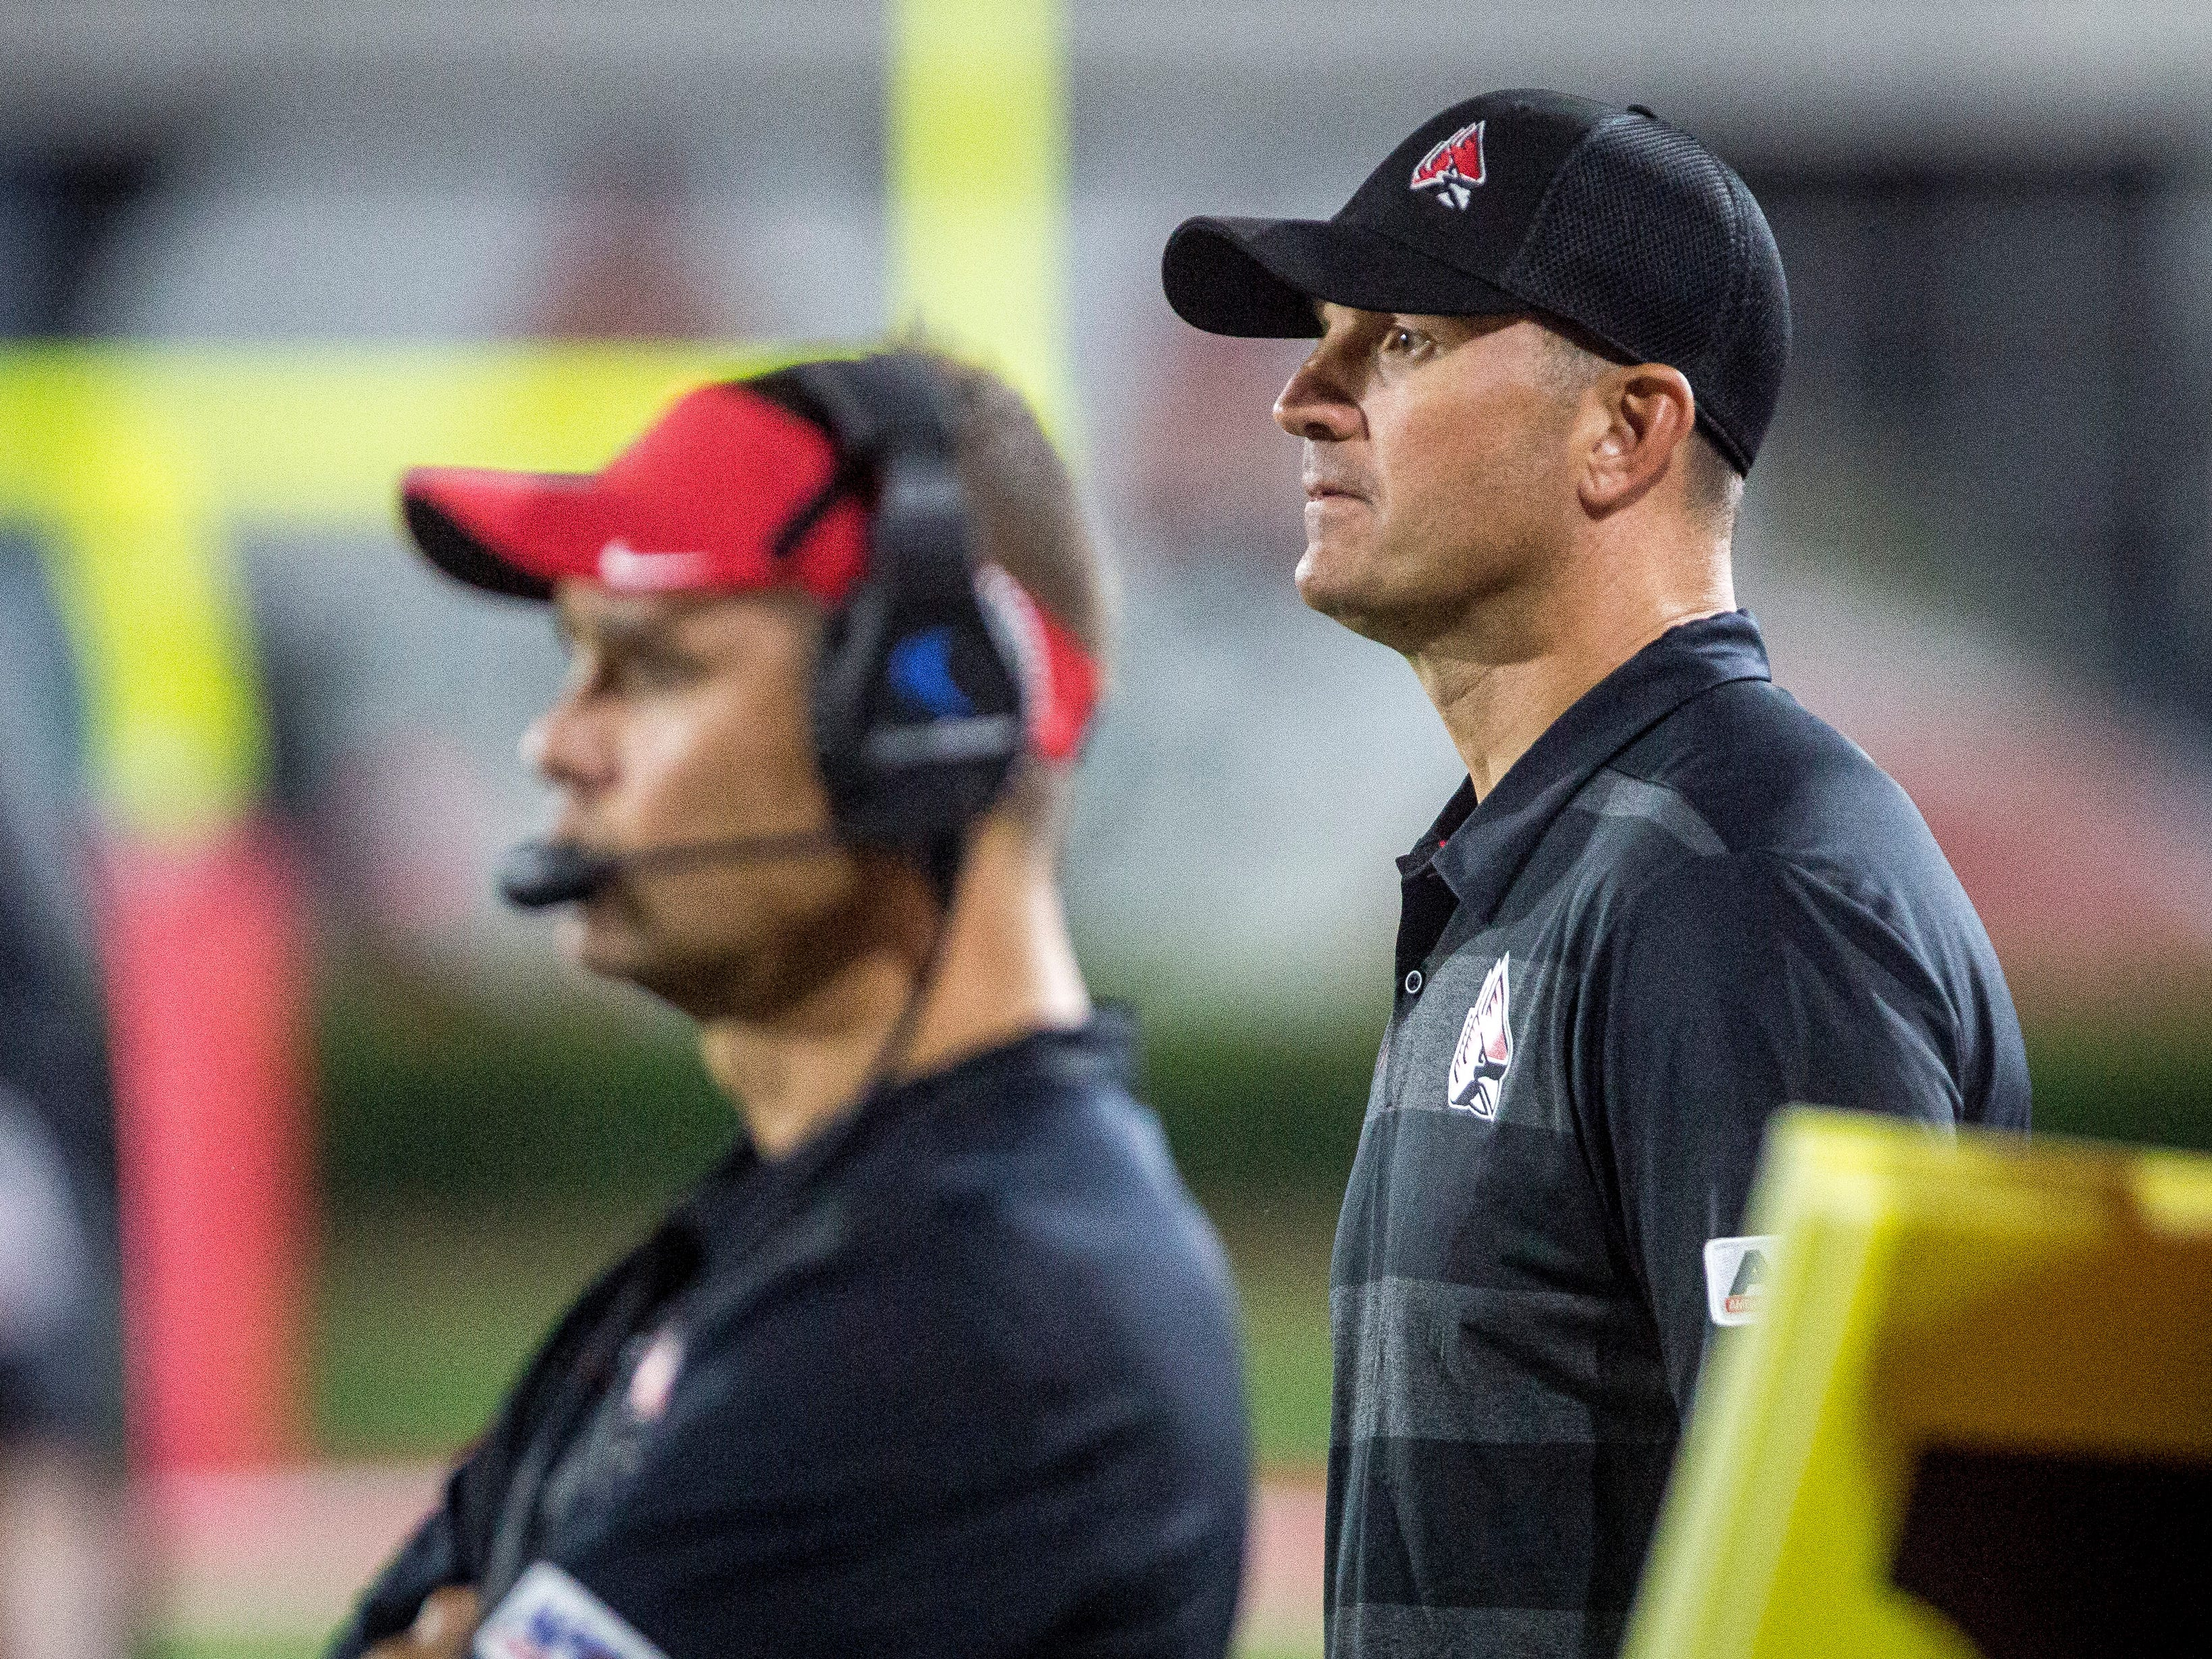 Ball State's Mike Neu, right, coaches against Central Connecticut State on Thursday night in Scheumann Stadium during Ball State's home opener.